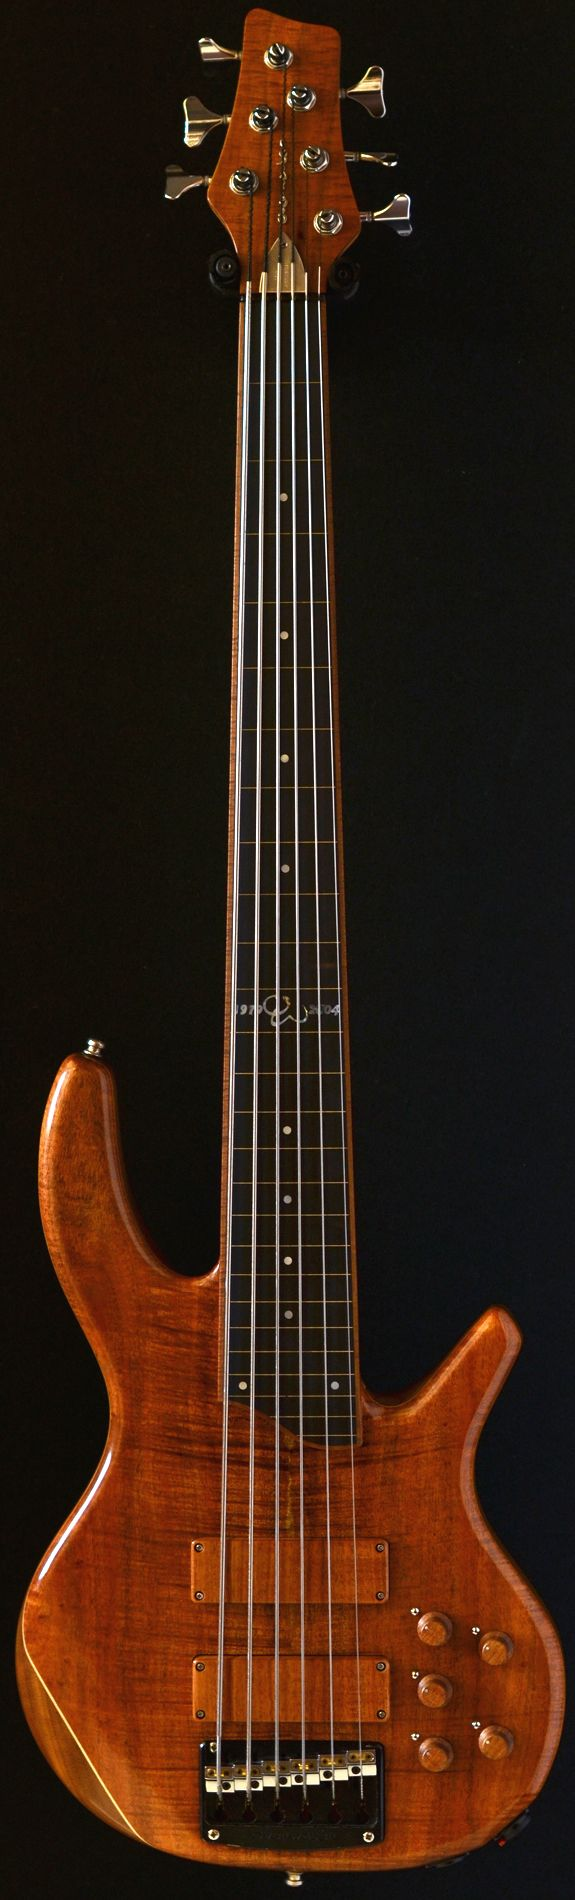 OVERWATER Progress III 6 fretless (via Bass Direct).Love fretless, remainds me how his daddy was.